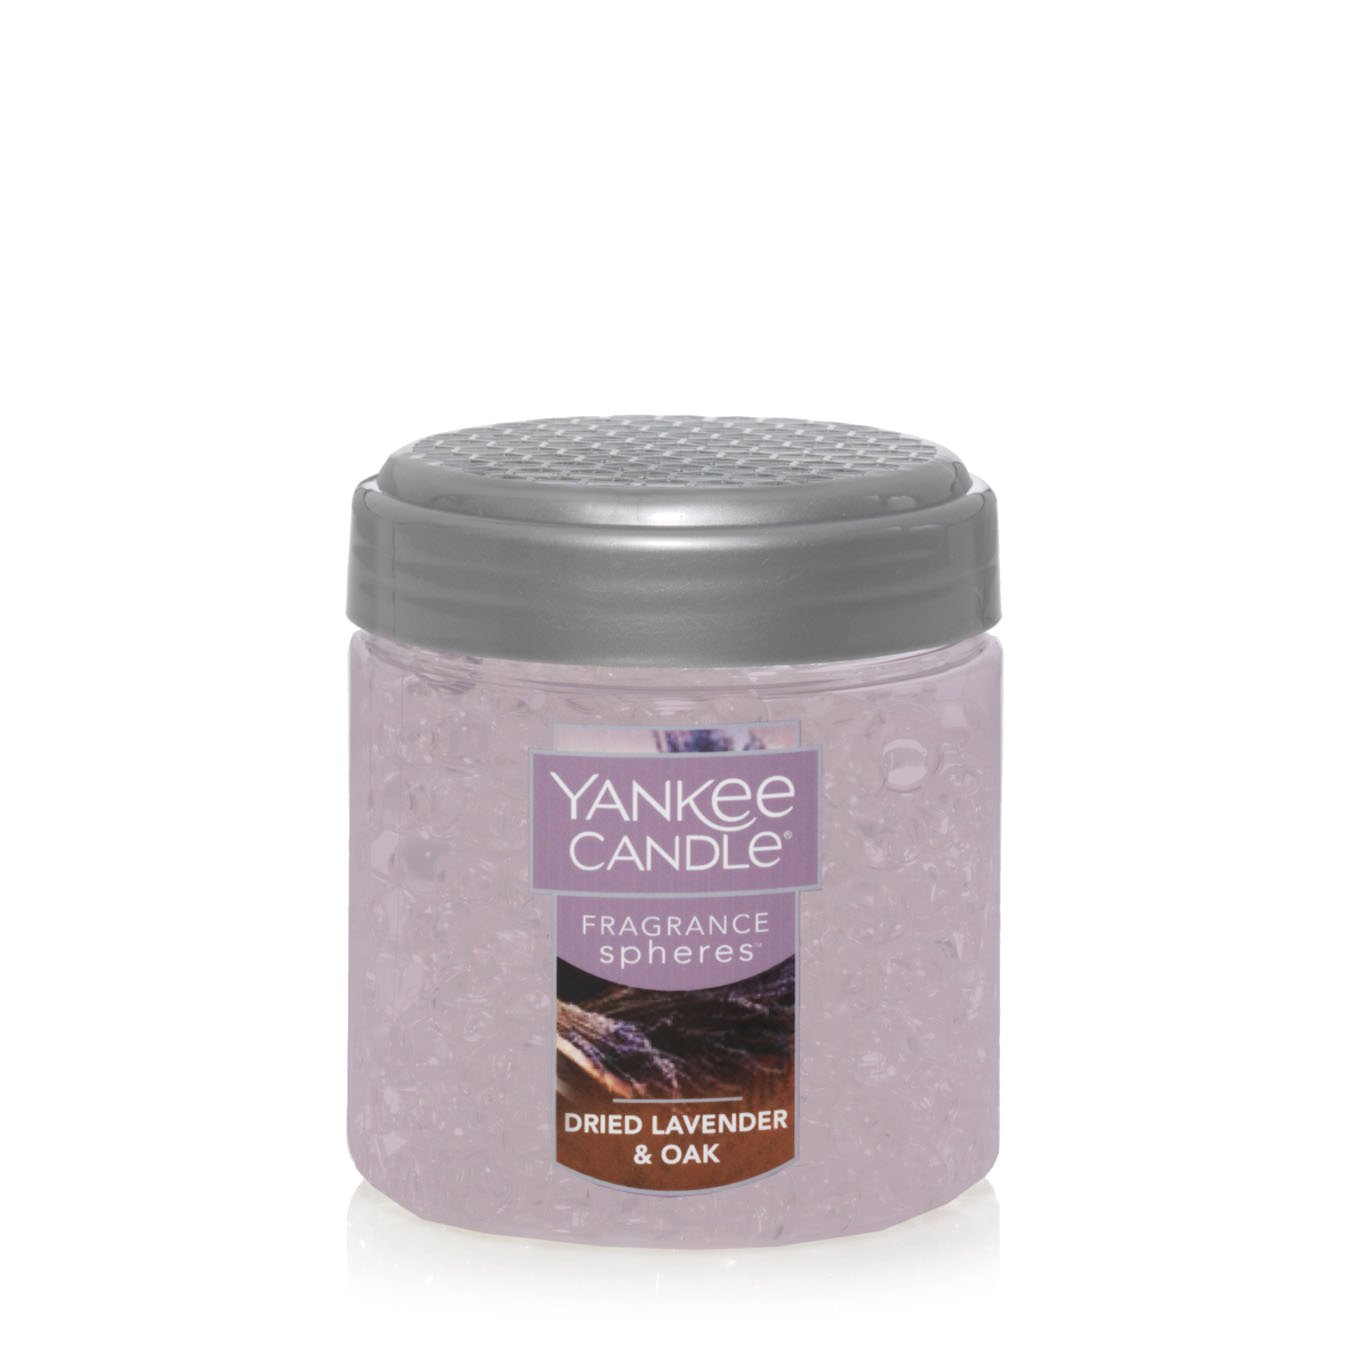 Yankee Candle Dried Lavender and Oak Fragrance Spheres Odor Neutralizing Beads